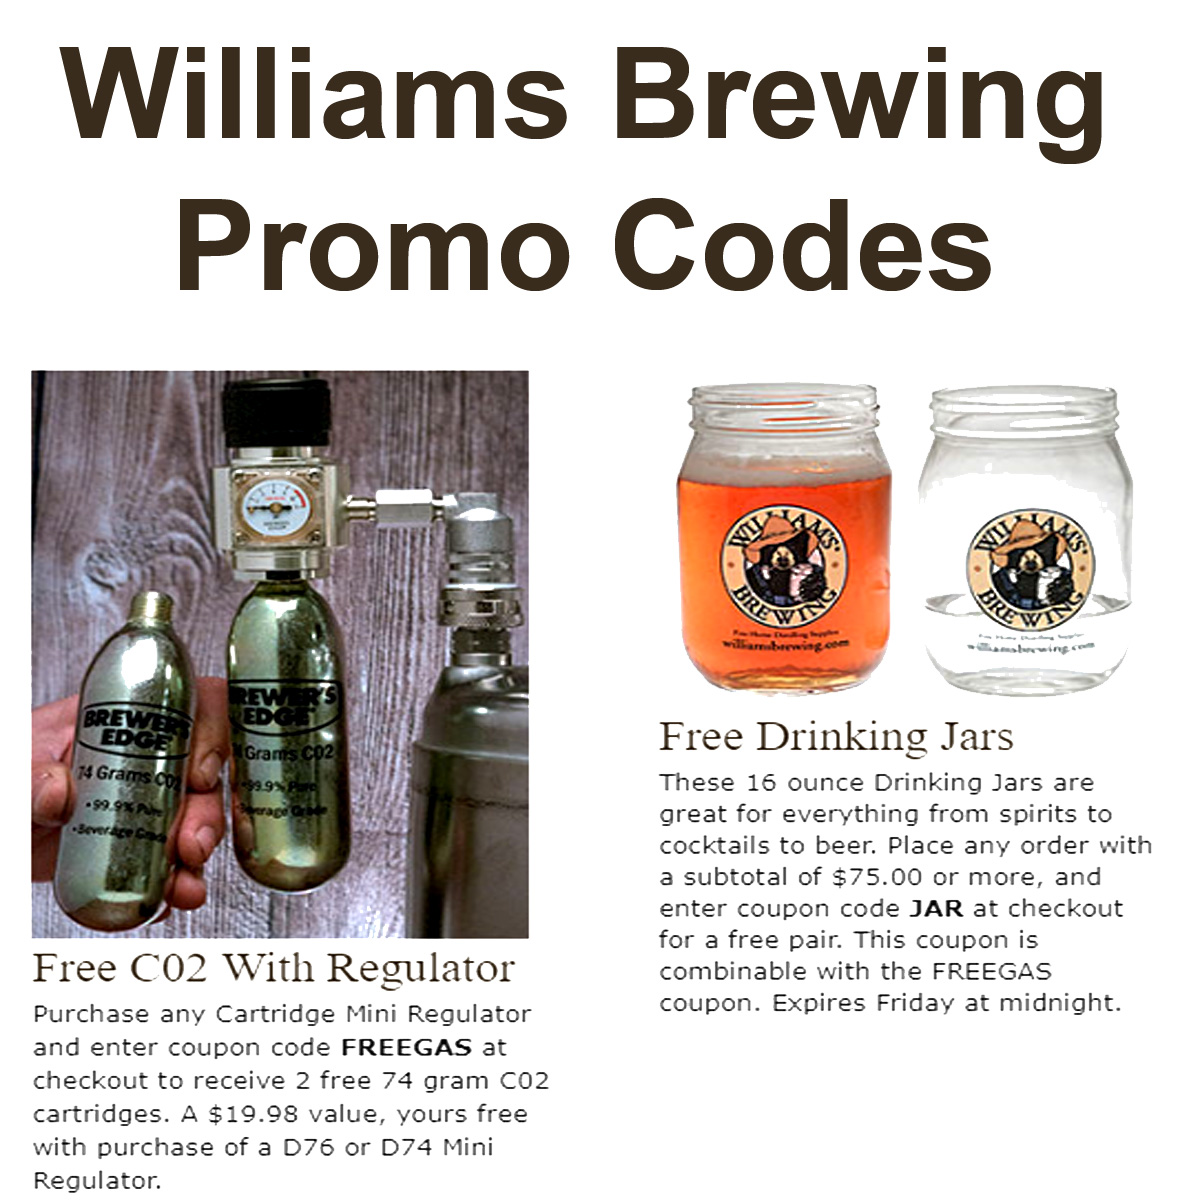 Home Wine Making Coupon Codes for Two WilliamsBrewing.com Promo Codes for FREE CO2 and FREE Drinking Glasses With These Williams Brewing Promo Codes Coupon Code